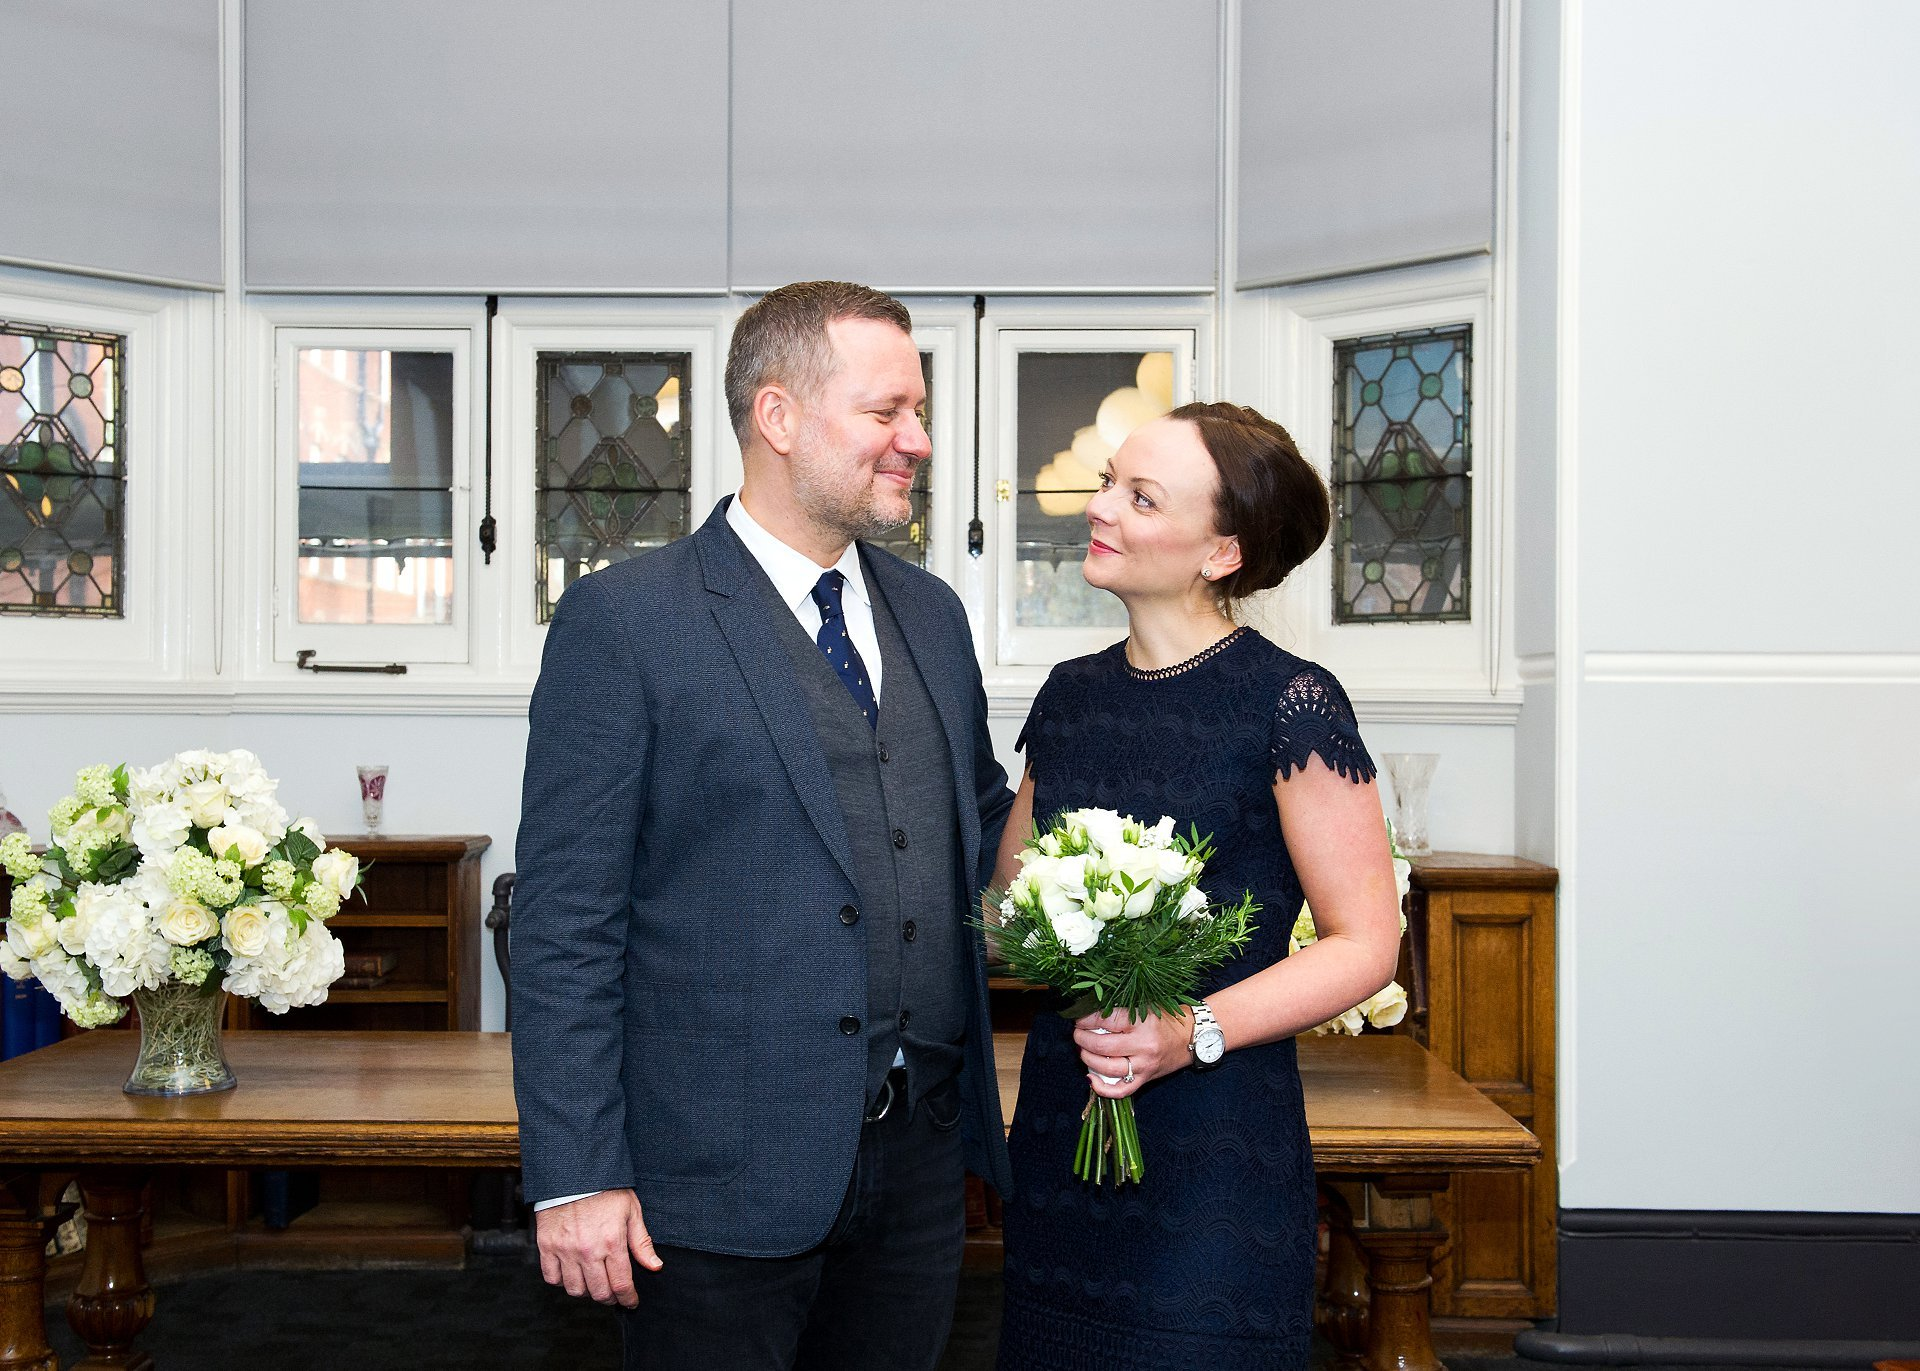 a bride and groom just before their civil wedding ceremony photographed by emma duggan a specialist register office photographer